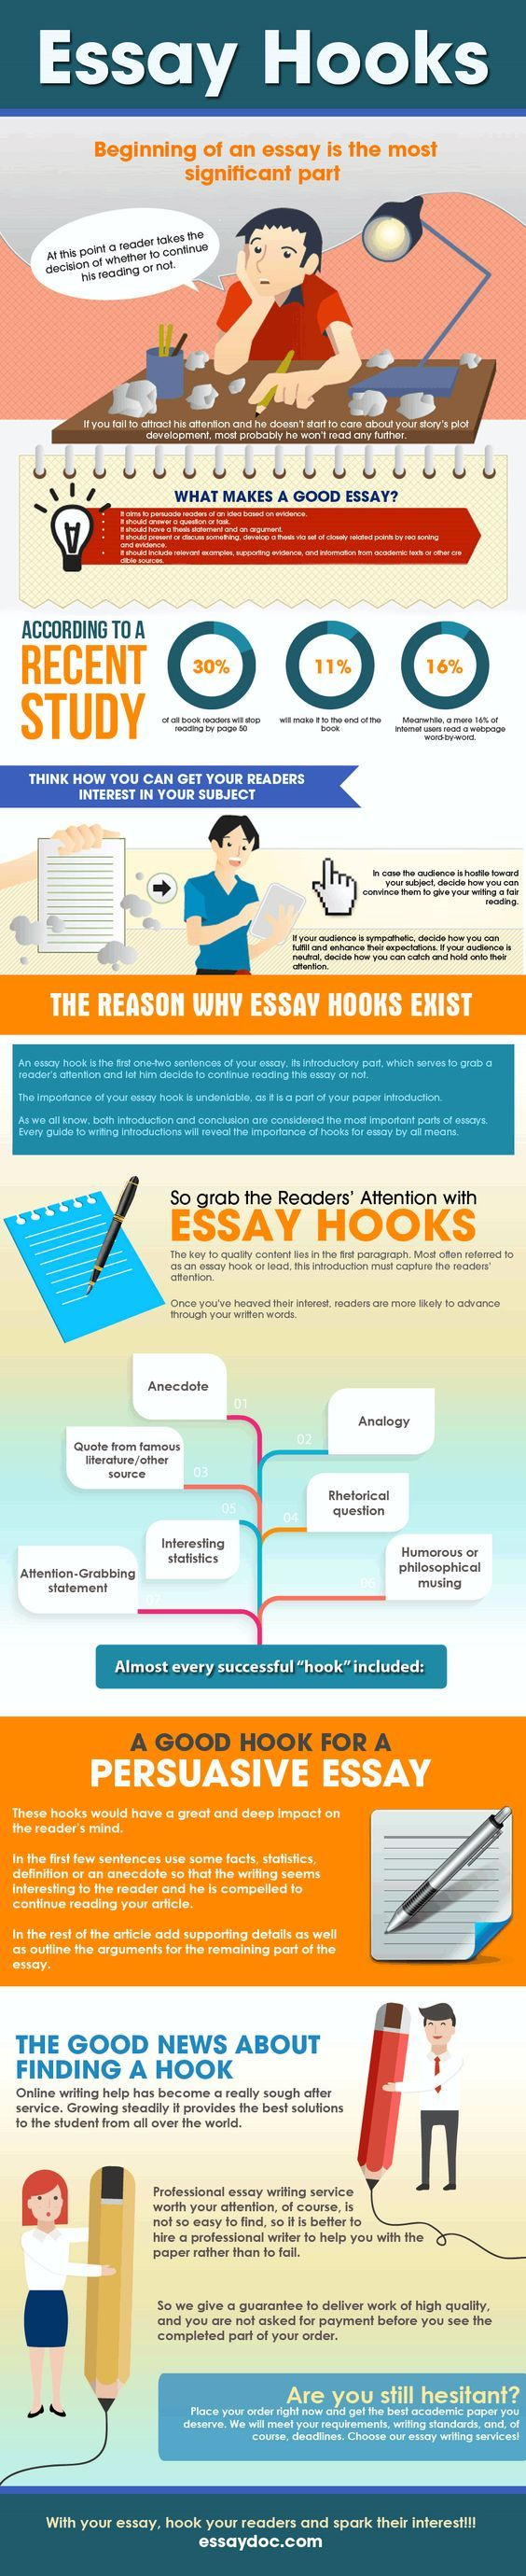 best how to write essay ideas essay writing  nice how to write a cause effect essay definition writing steps